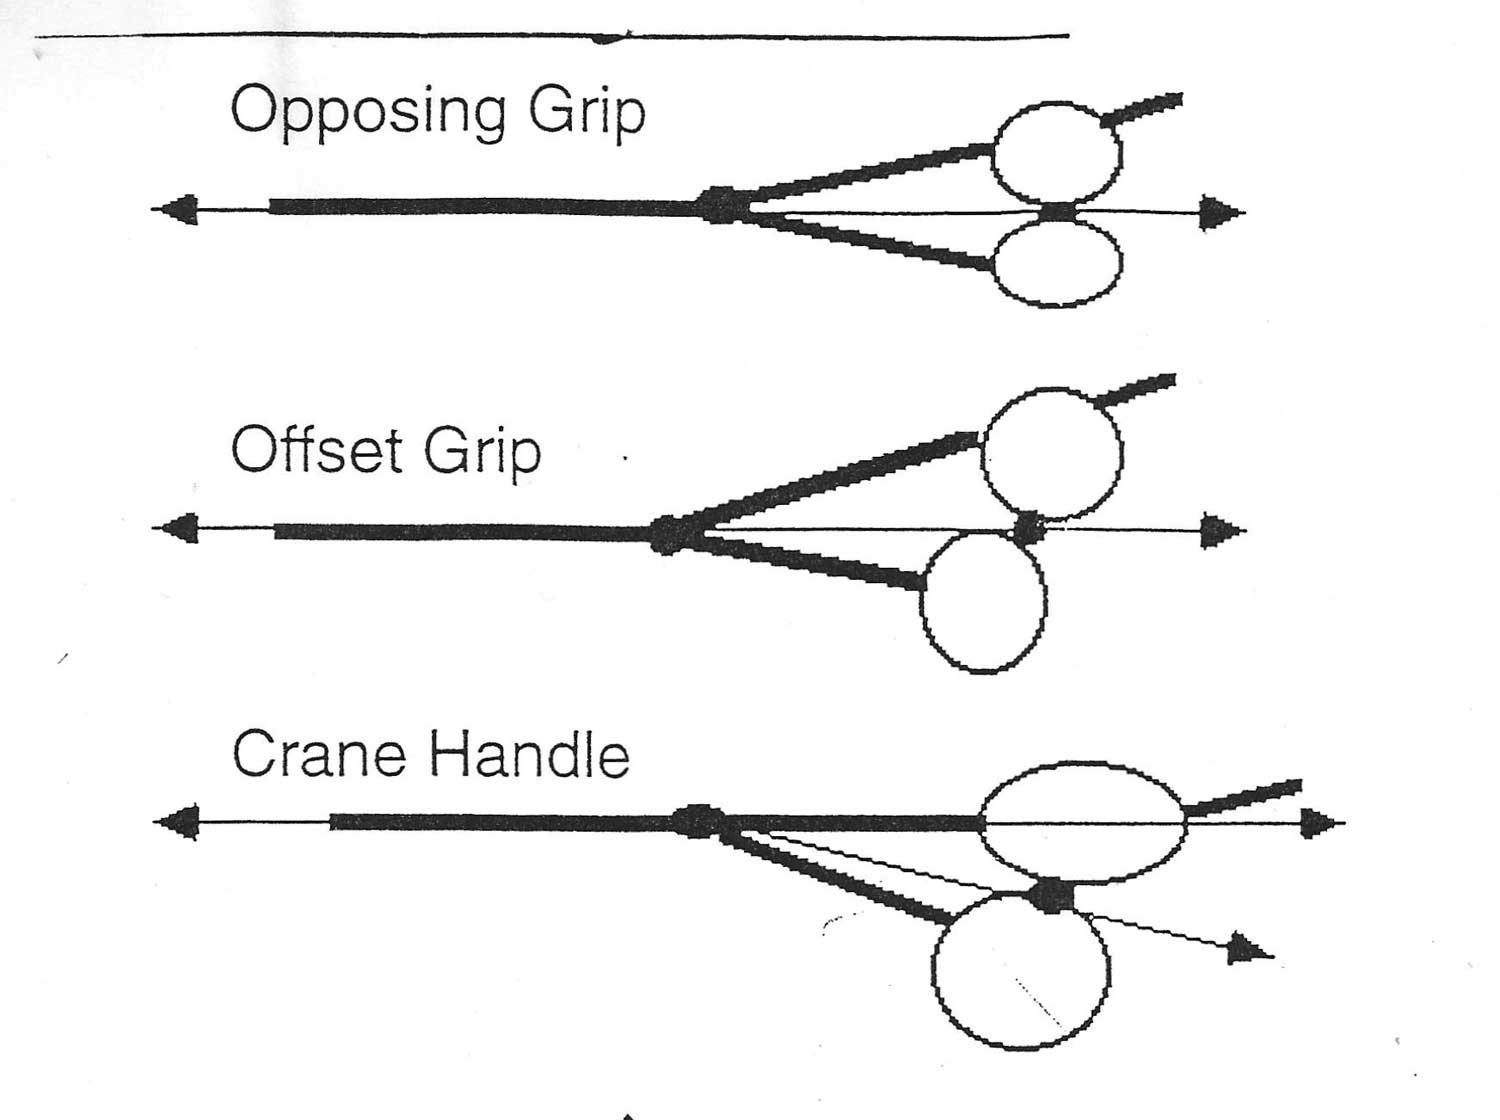 3 Main handle designs of hairdressing shears: Opposing grip, offset grip, and crane handle.